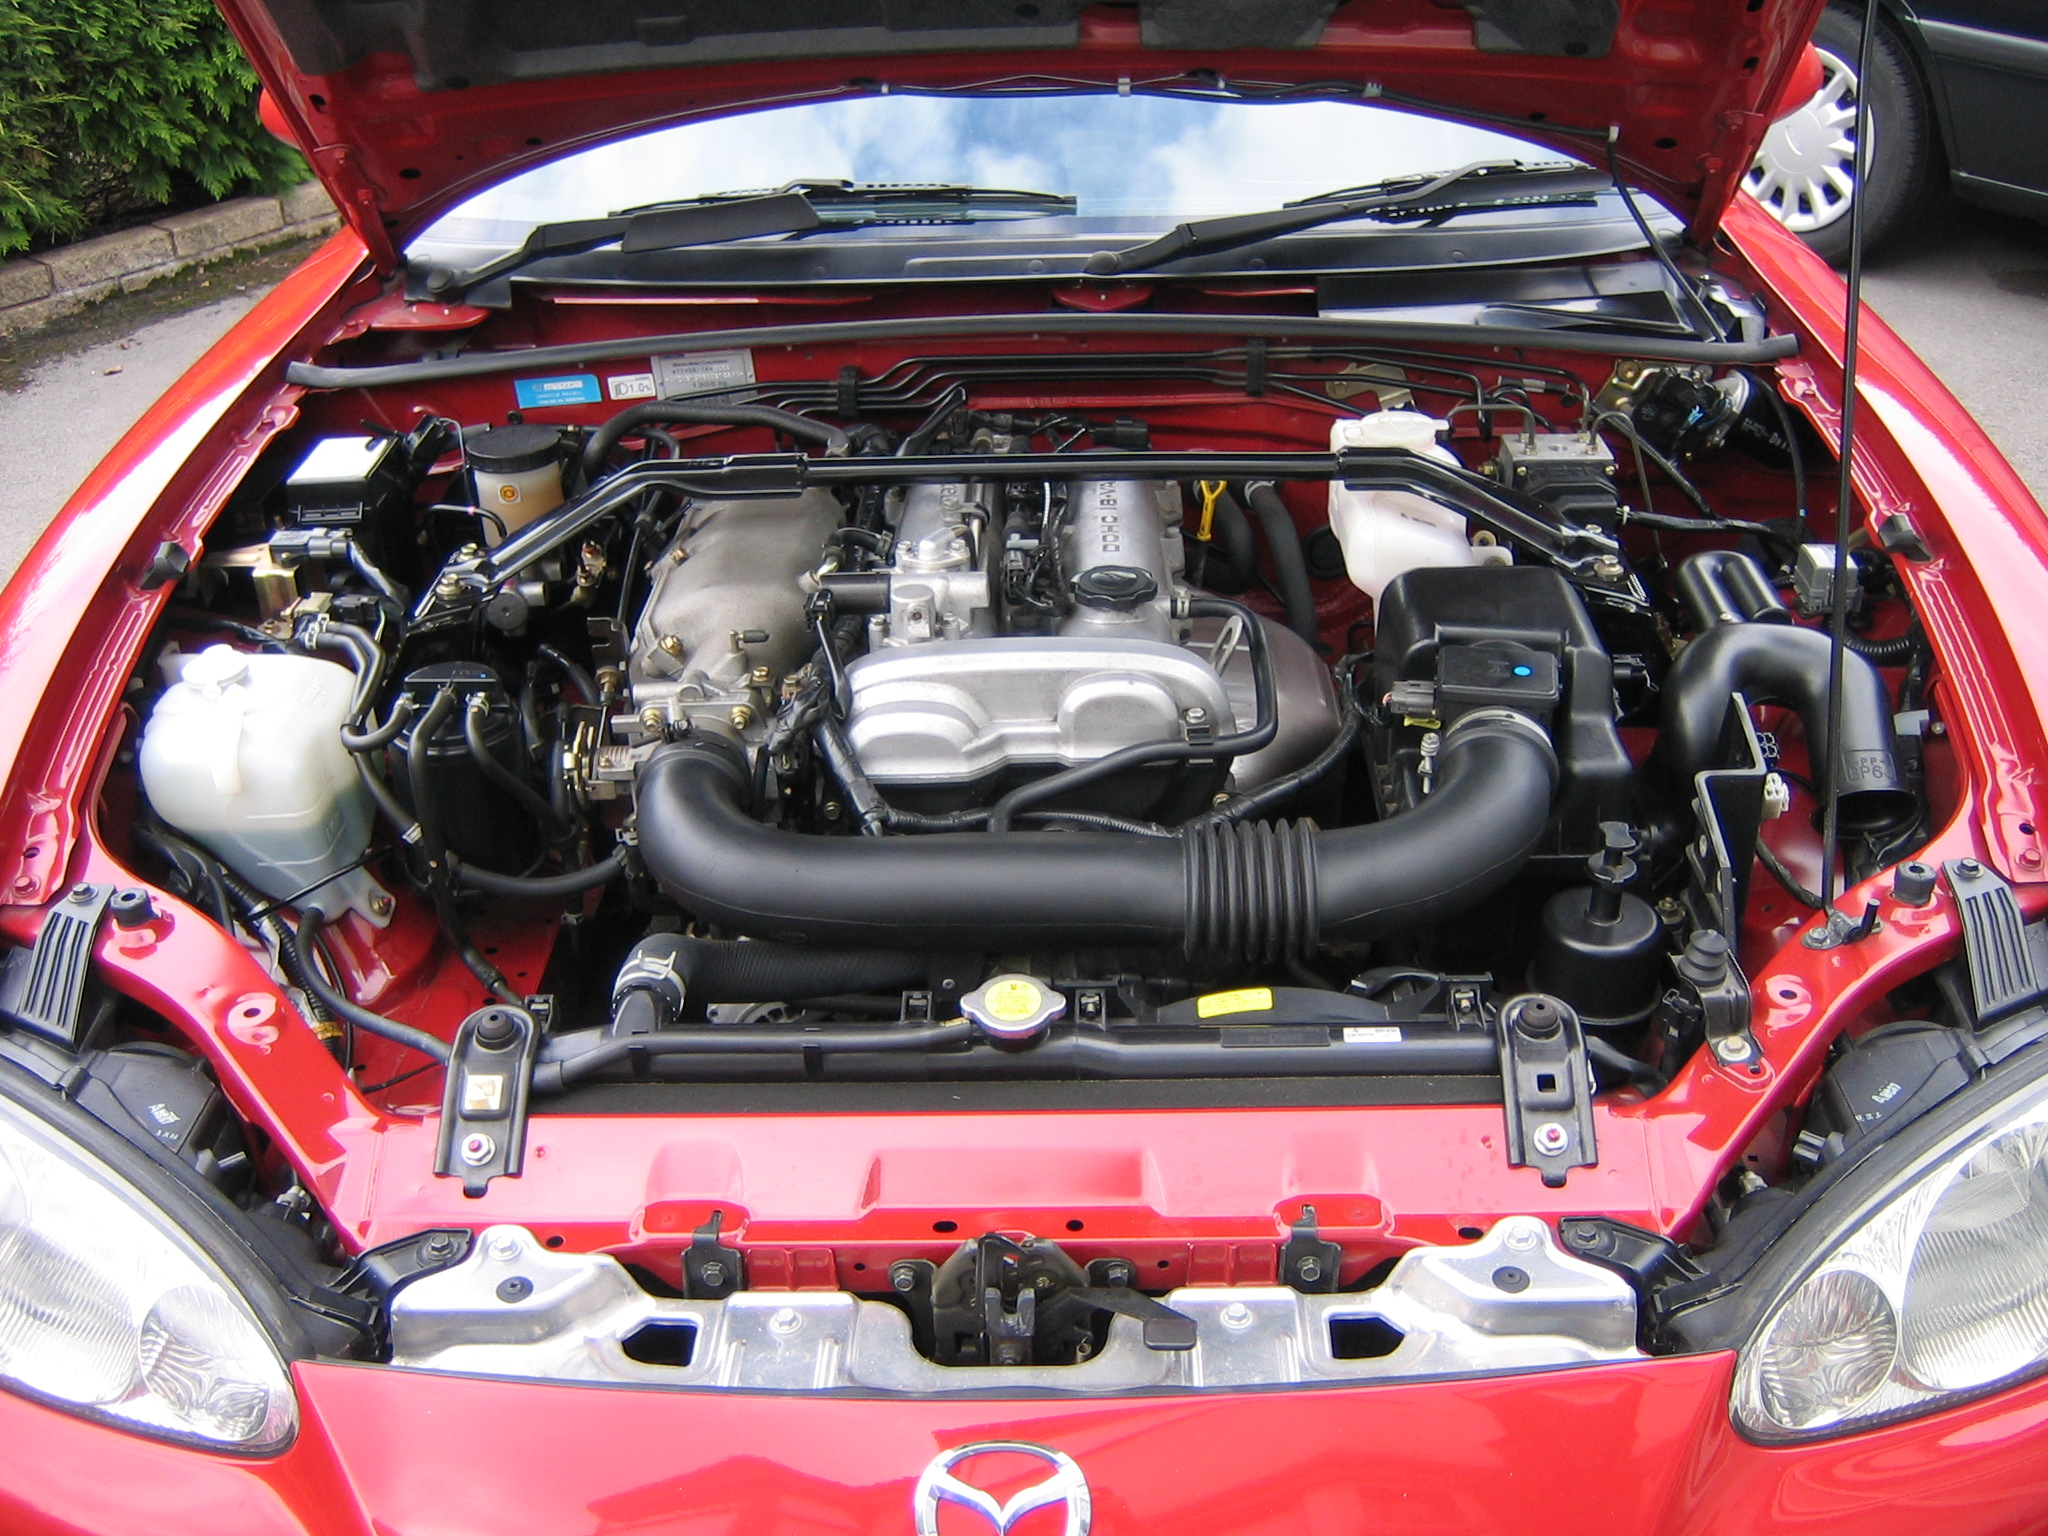 Description 2002 Mazda MX5 NB Mk2 Sport1,840cc 4-cylinder DOHC engine